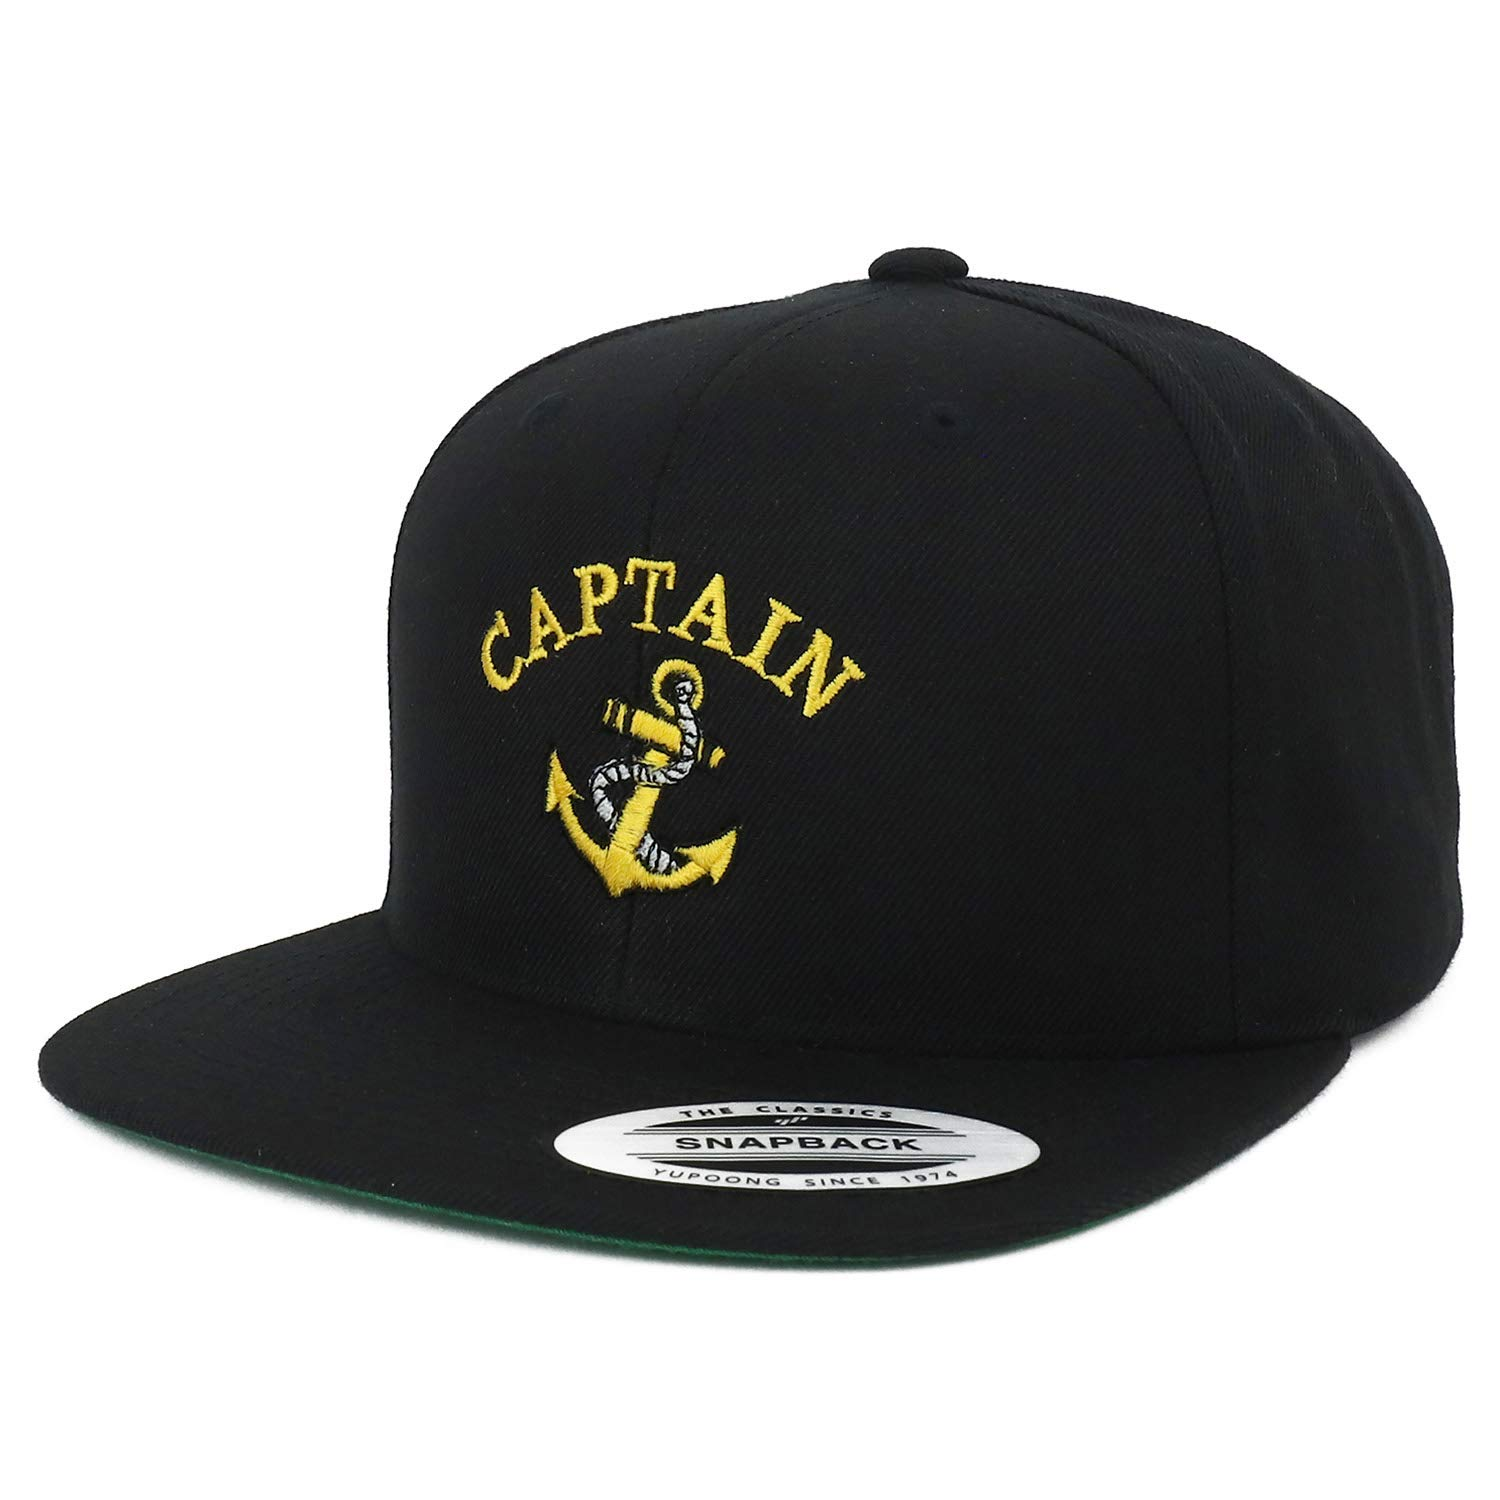 e1d888e3f30c82 Armycrew Flexfit Oversize XXL Captain Anchor Logo Embroidered Structured  Flatbill Snapback Cap - Black - 2XL at Amazon Men's Clothing store: